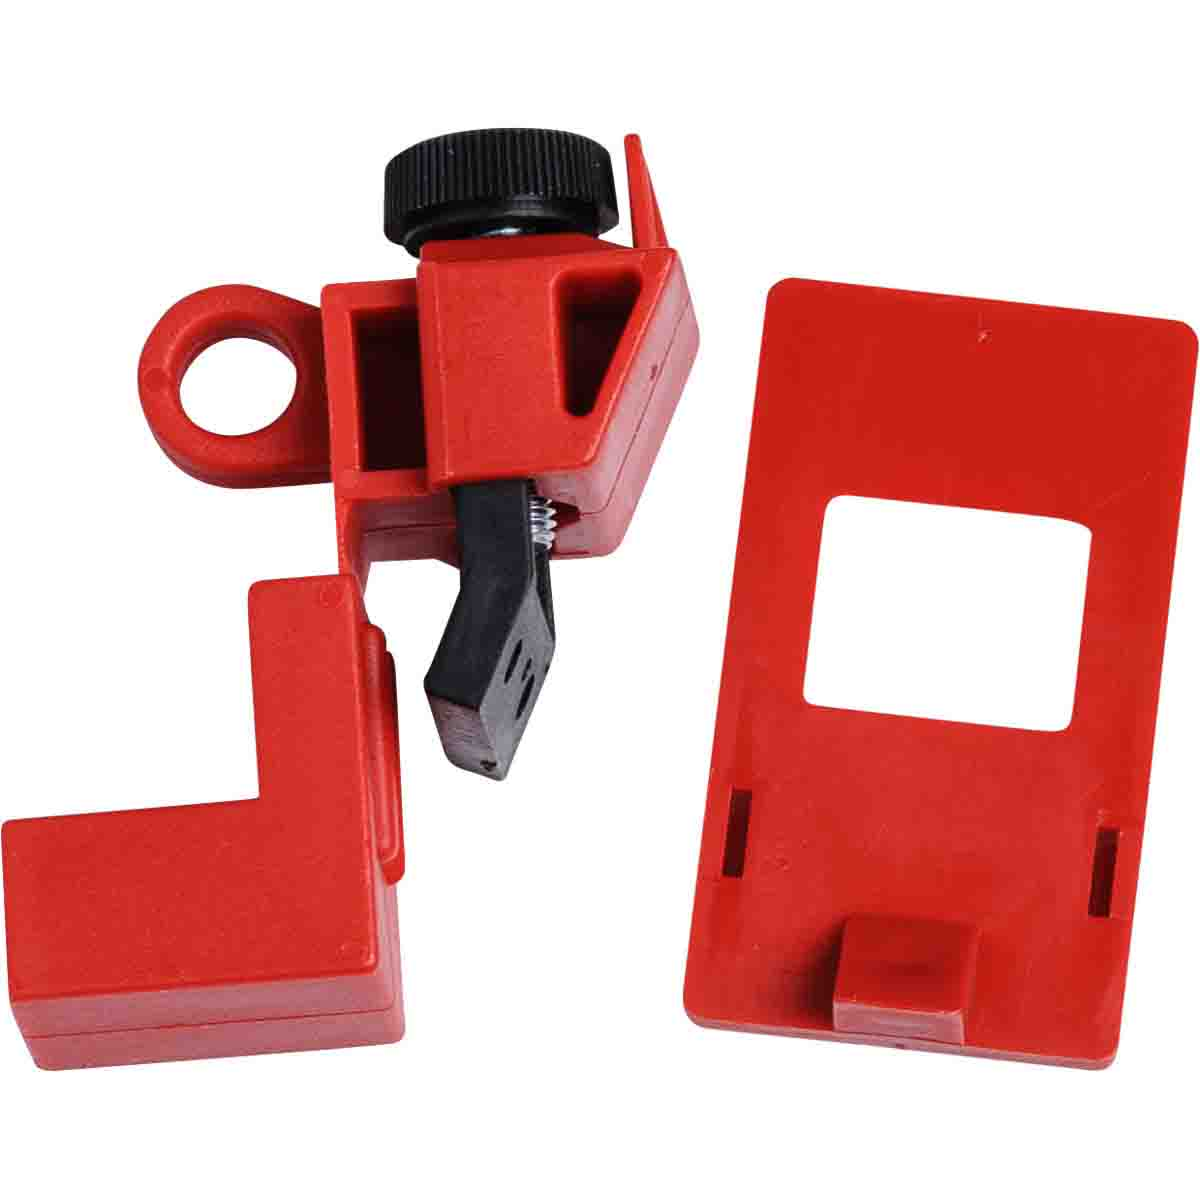 Brady® 65396 1-Pole Clamp-On Circuit Breaker Switch Lockout Device, For Use With 120/277 VAC Single Pole and Internal-Trip Multi-Pole Breaker, 1 Padlocks, 0.31 in Dia Max Padlock Shackle, LOTO-14 Polypropylene, Red